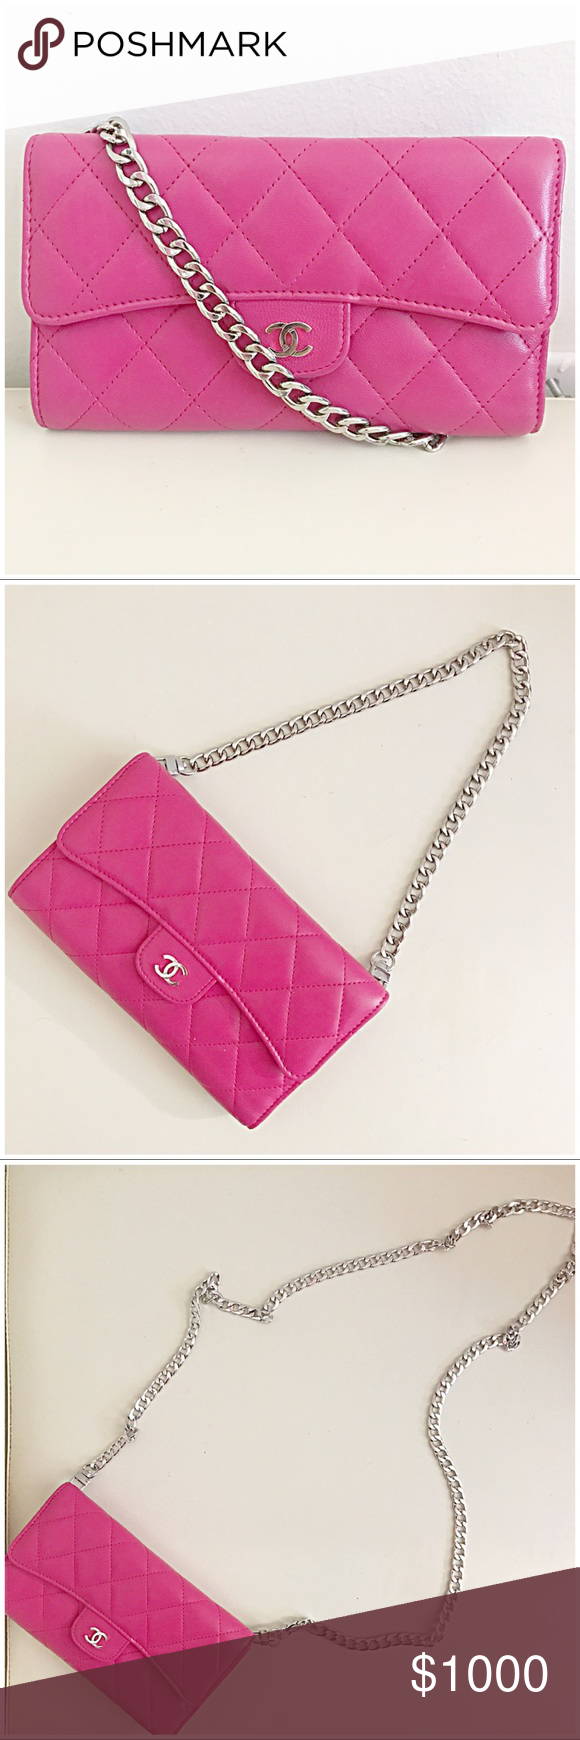 1d17e4670ab9 Authentic Chanel Classic Flap Wallet On Chain Pink This gorgeous authentic Chanel  Classic Flap Wallet On